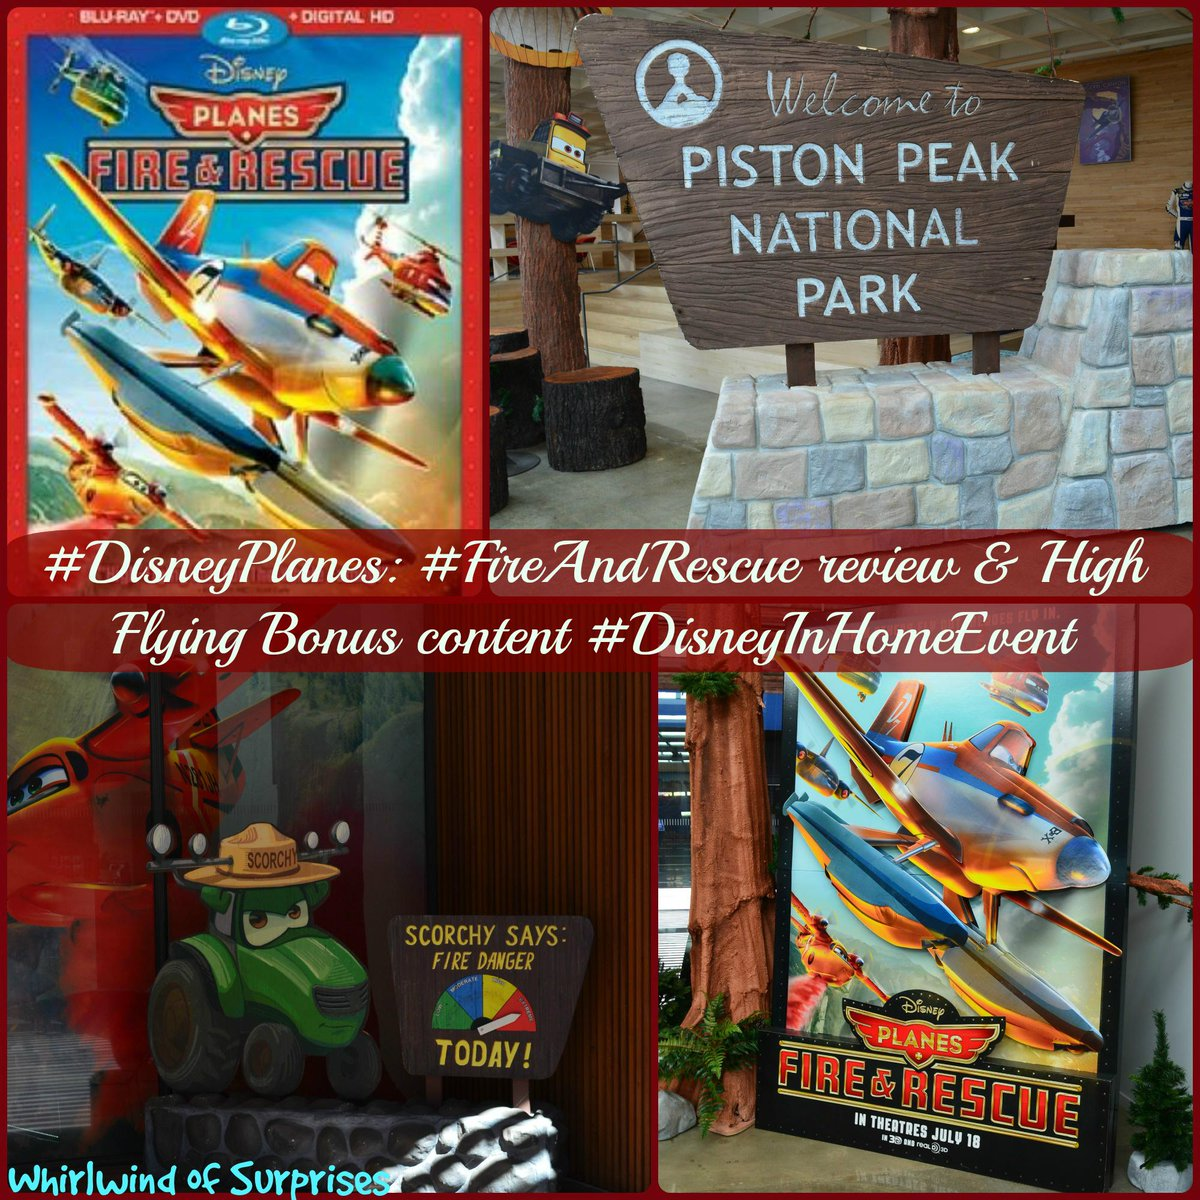 Disney Planes: #FireAndRescue Review and bonus content overview